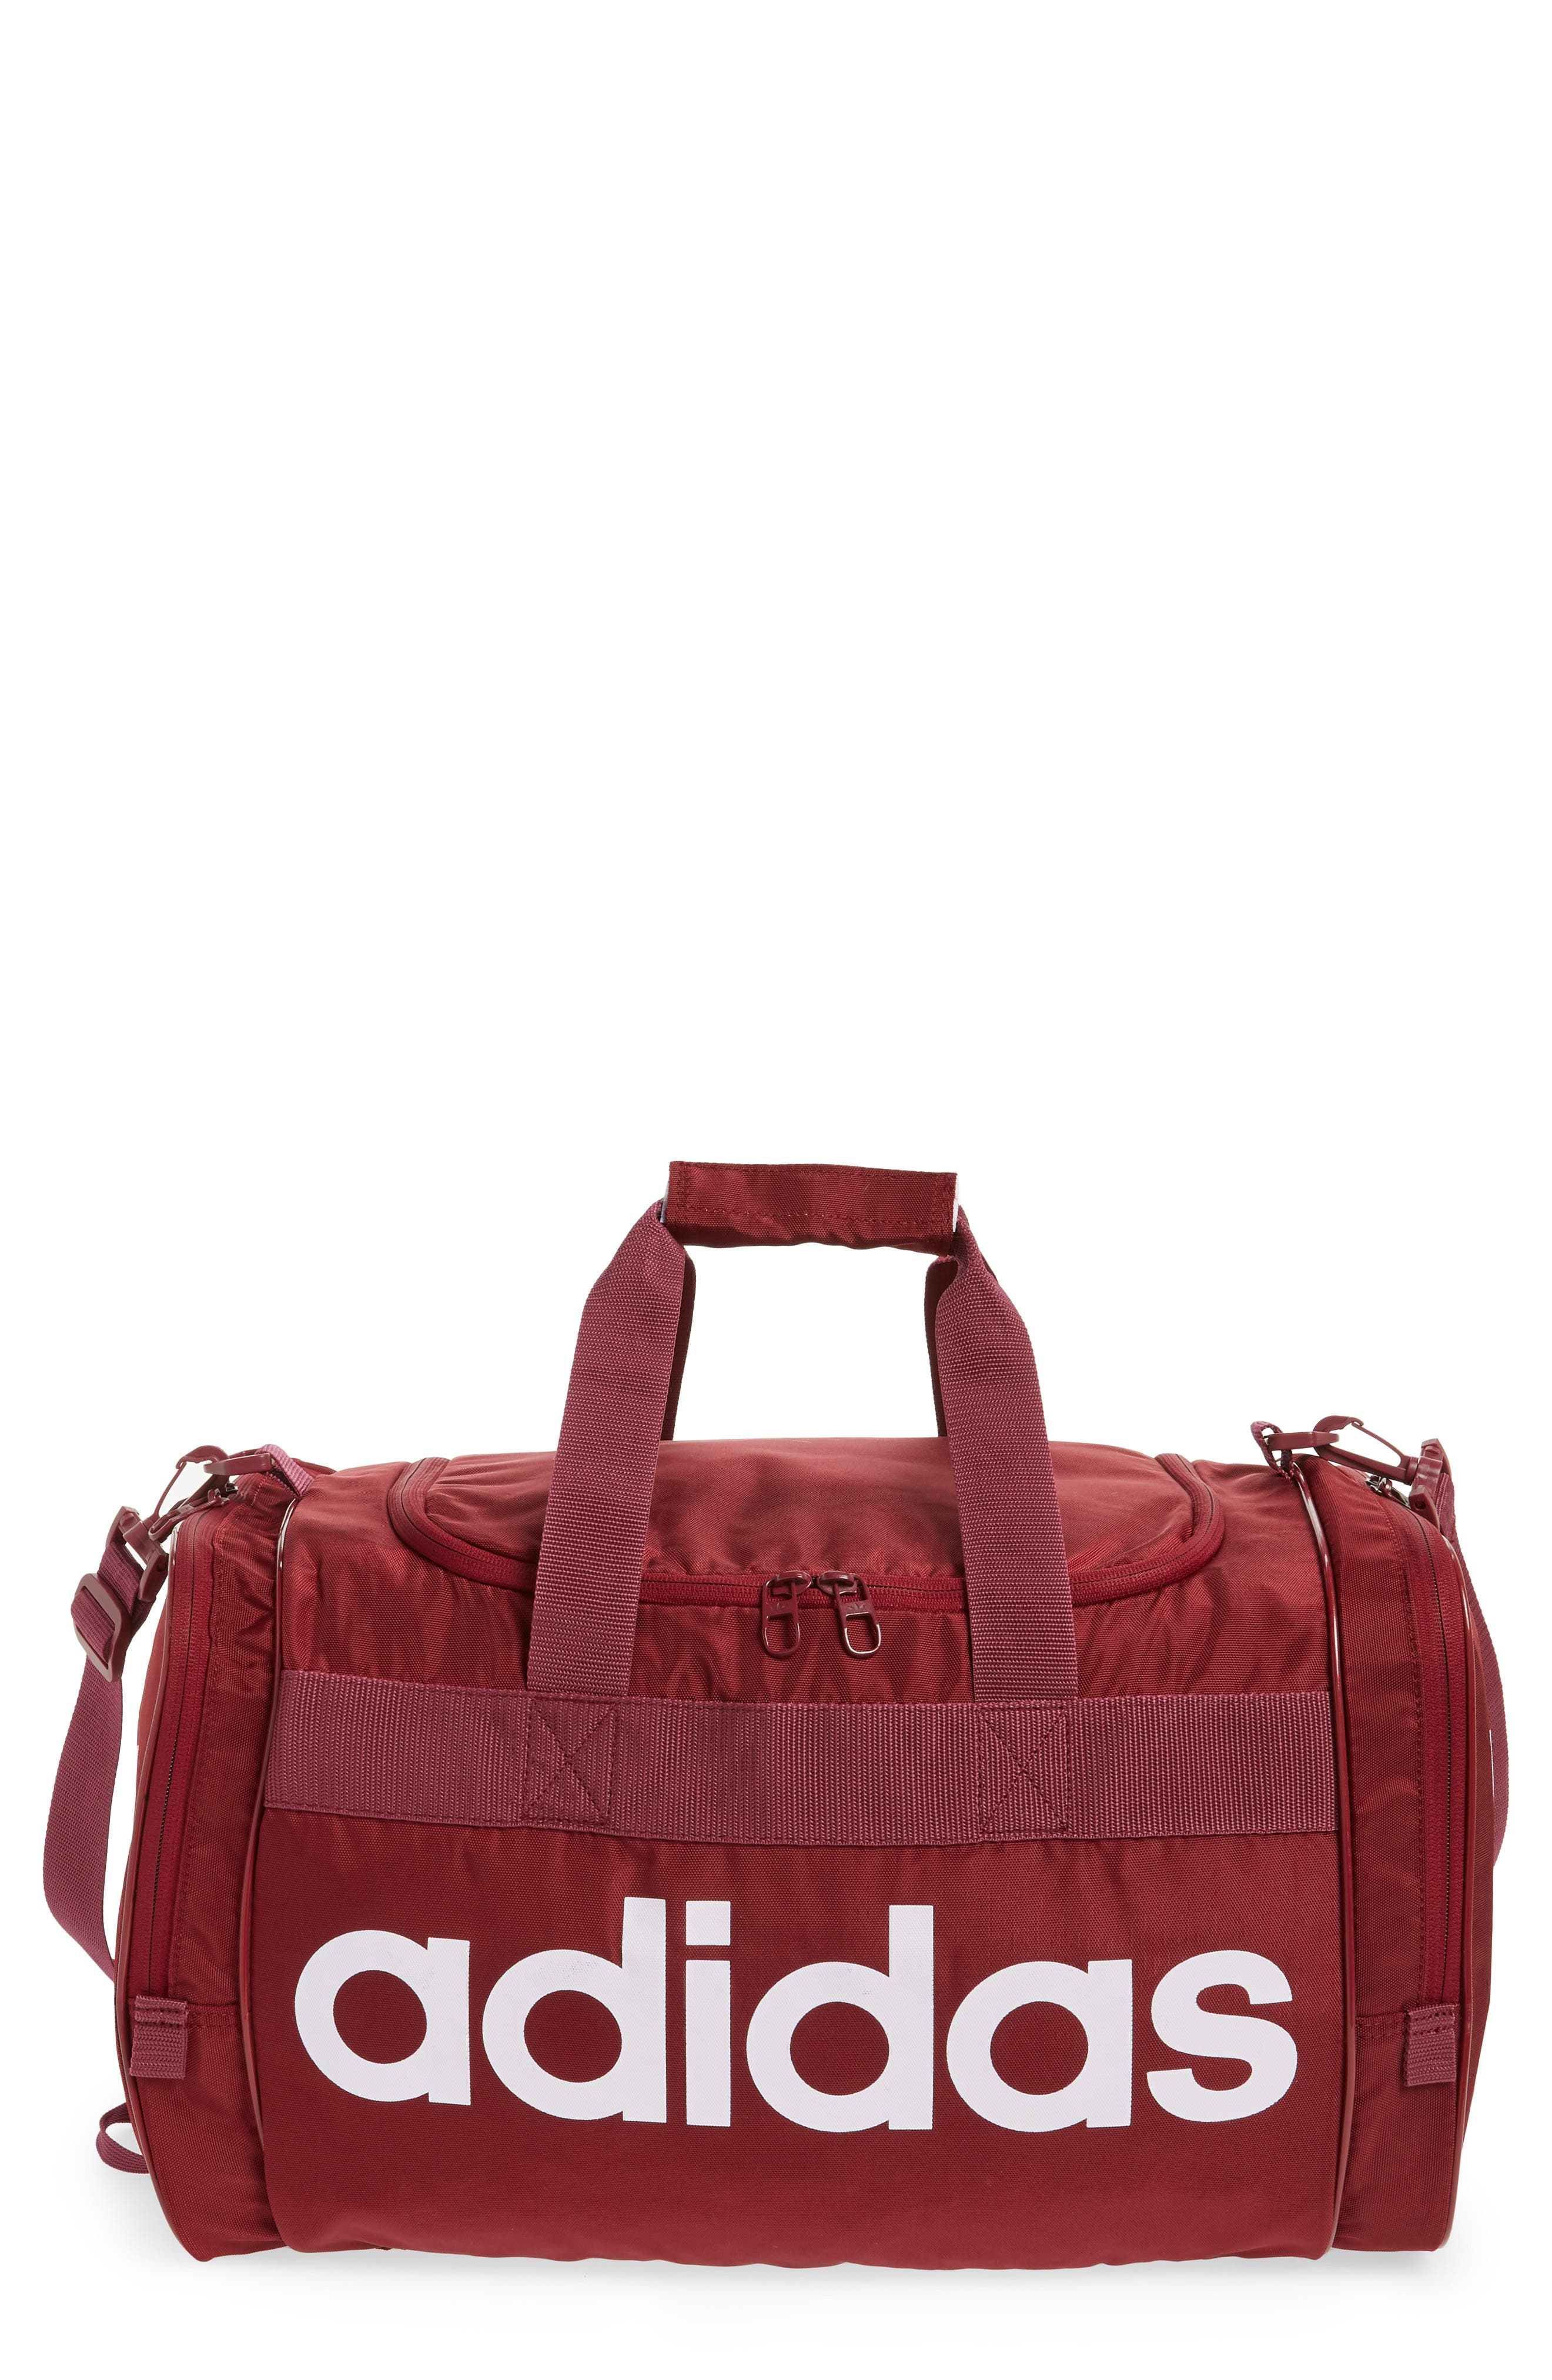 adidas Original Santiago Duffel Bag,                             Main thumbnail 1, color,                             COLLEGIATE BURGUNDY/ WHITE